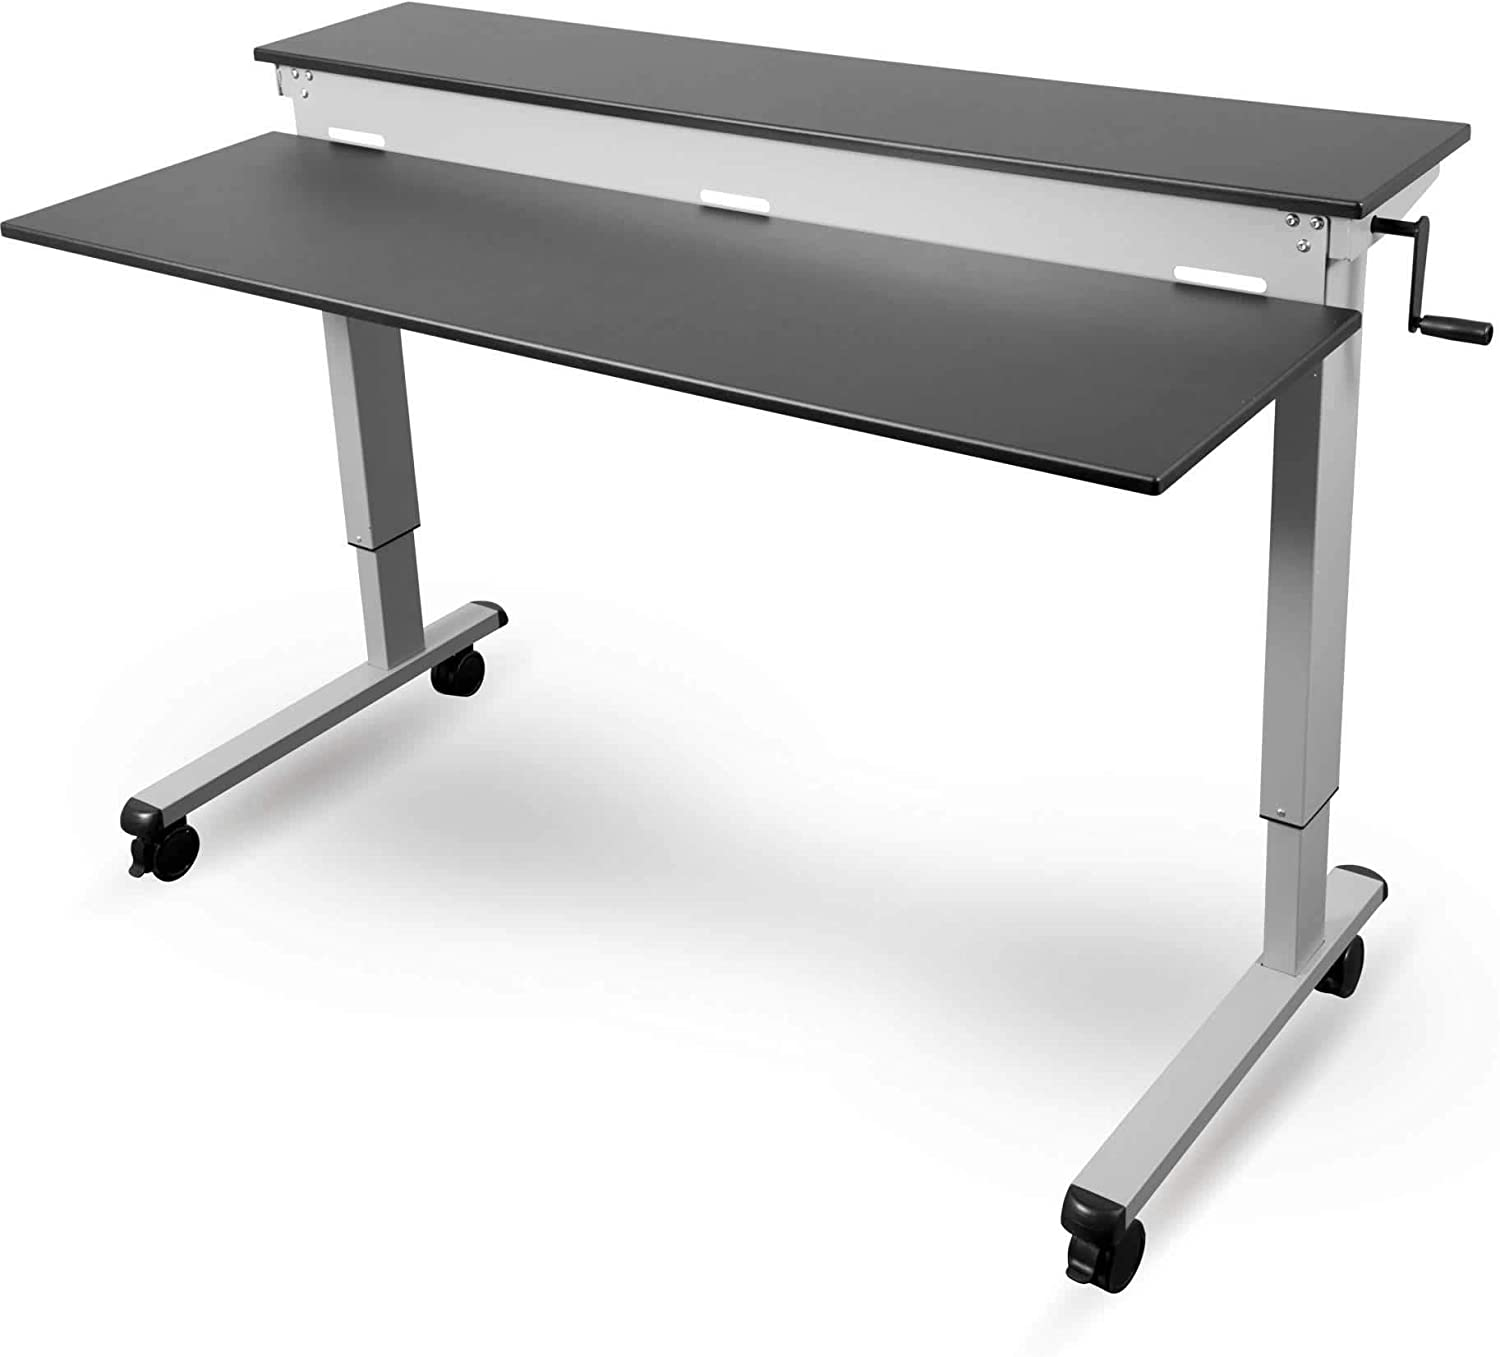 60? crank adjustable height sit to stand up desk with heavy duty steel frame